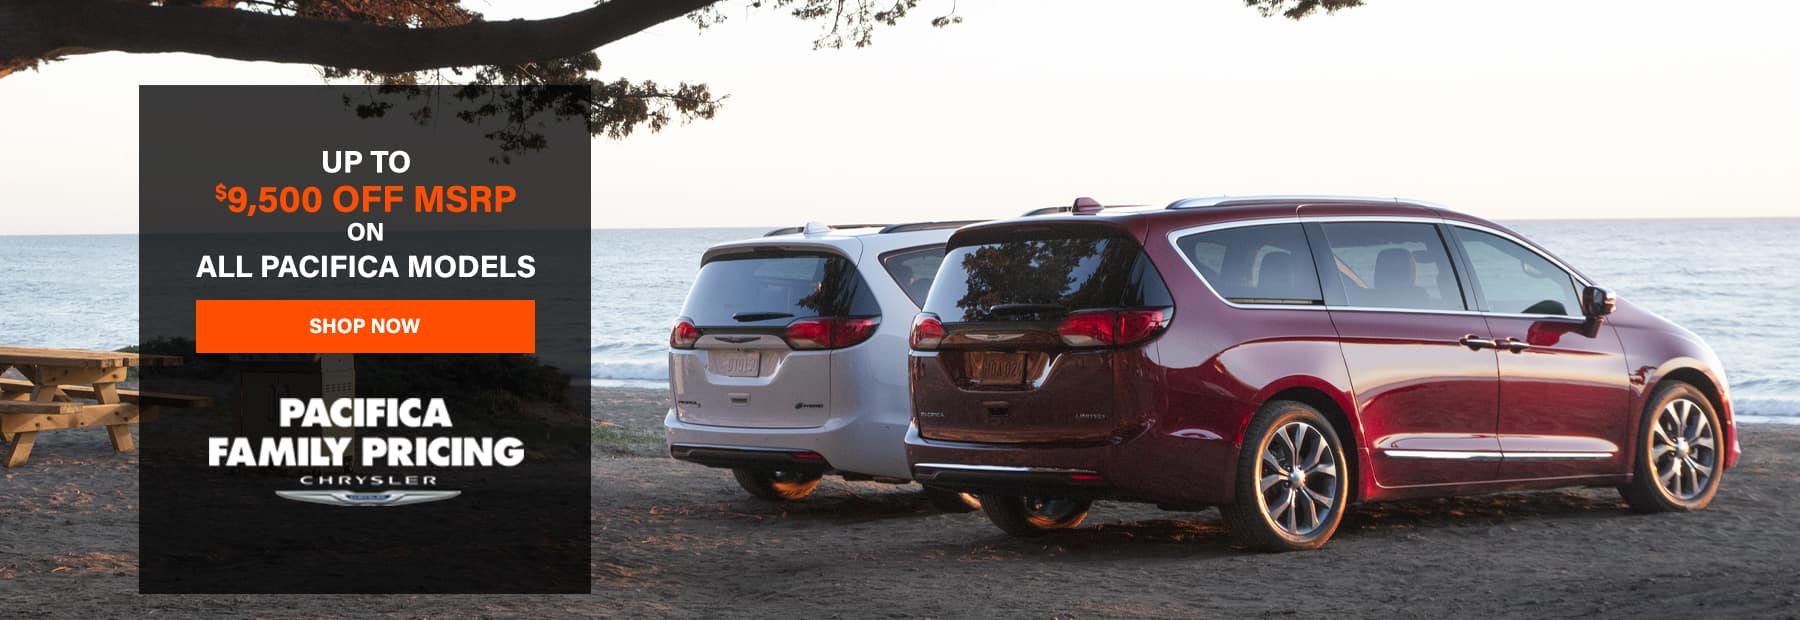 All Chrysler Pacifica Models - Up to $9,500 OFF MSRP!